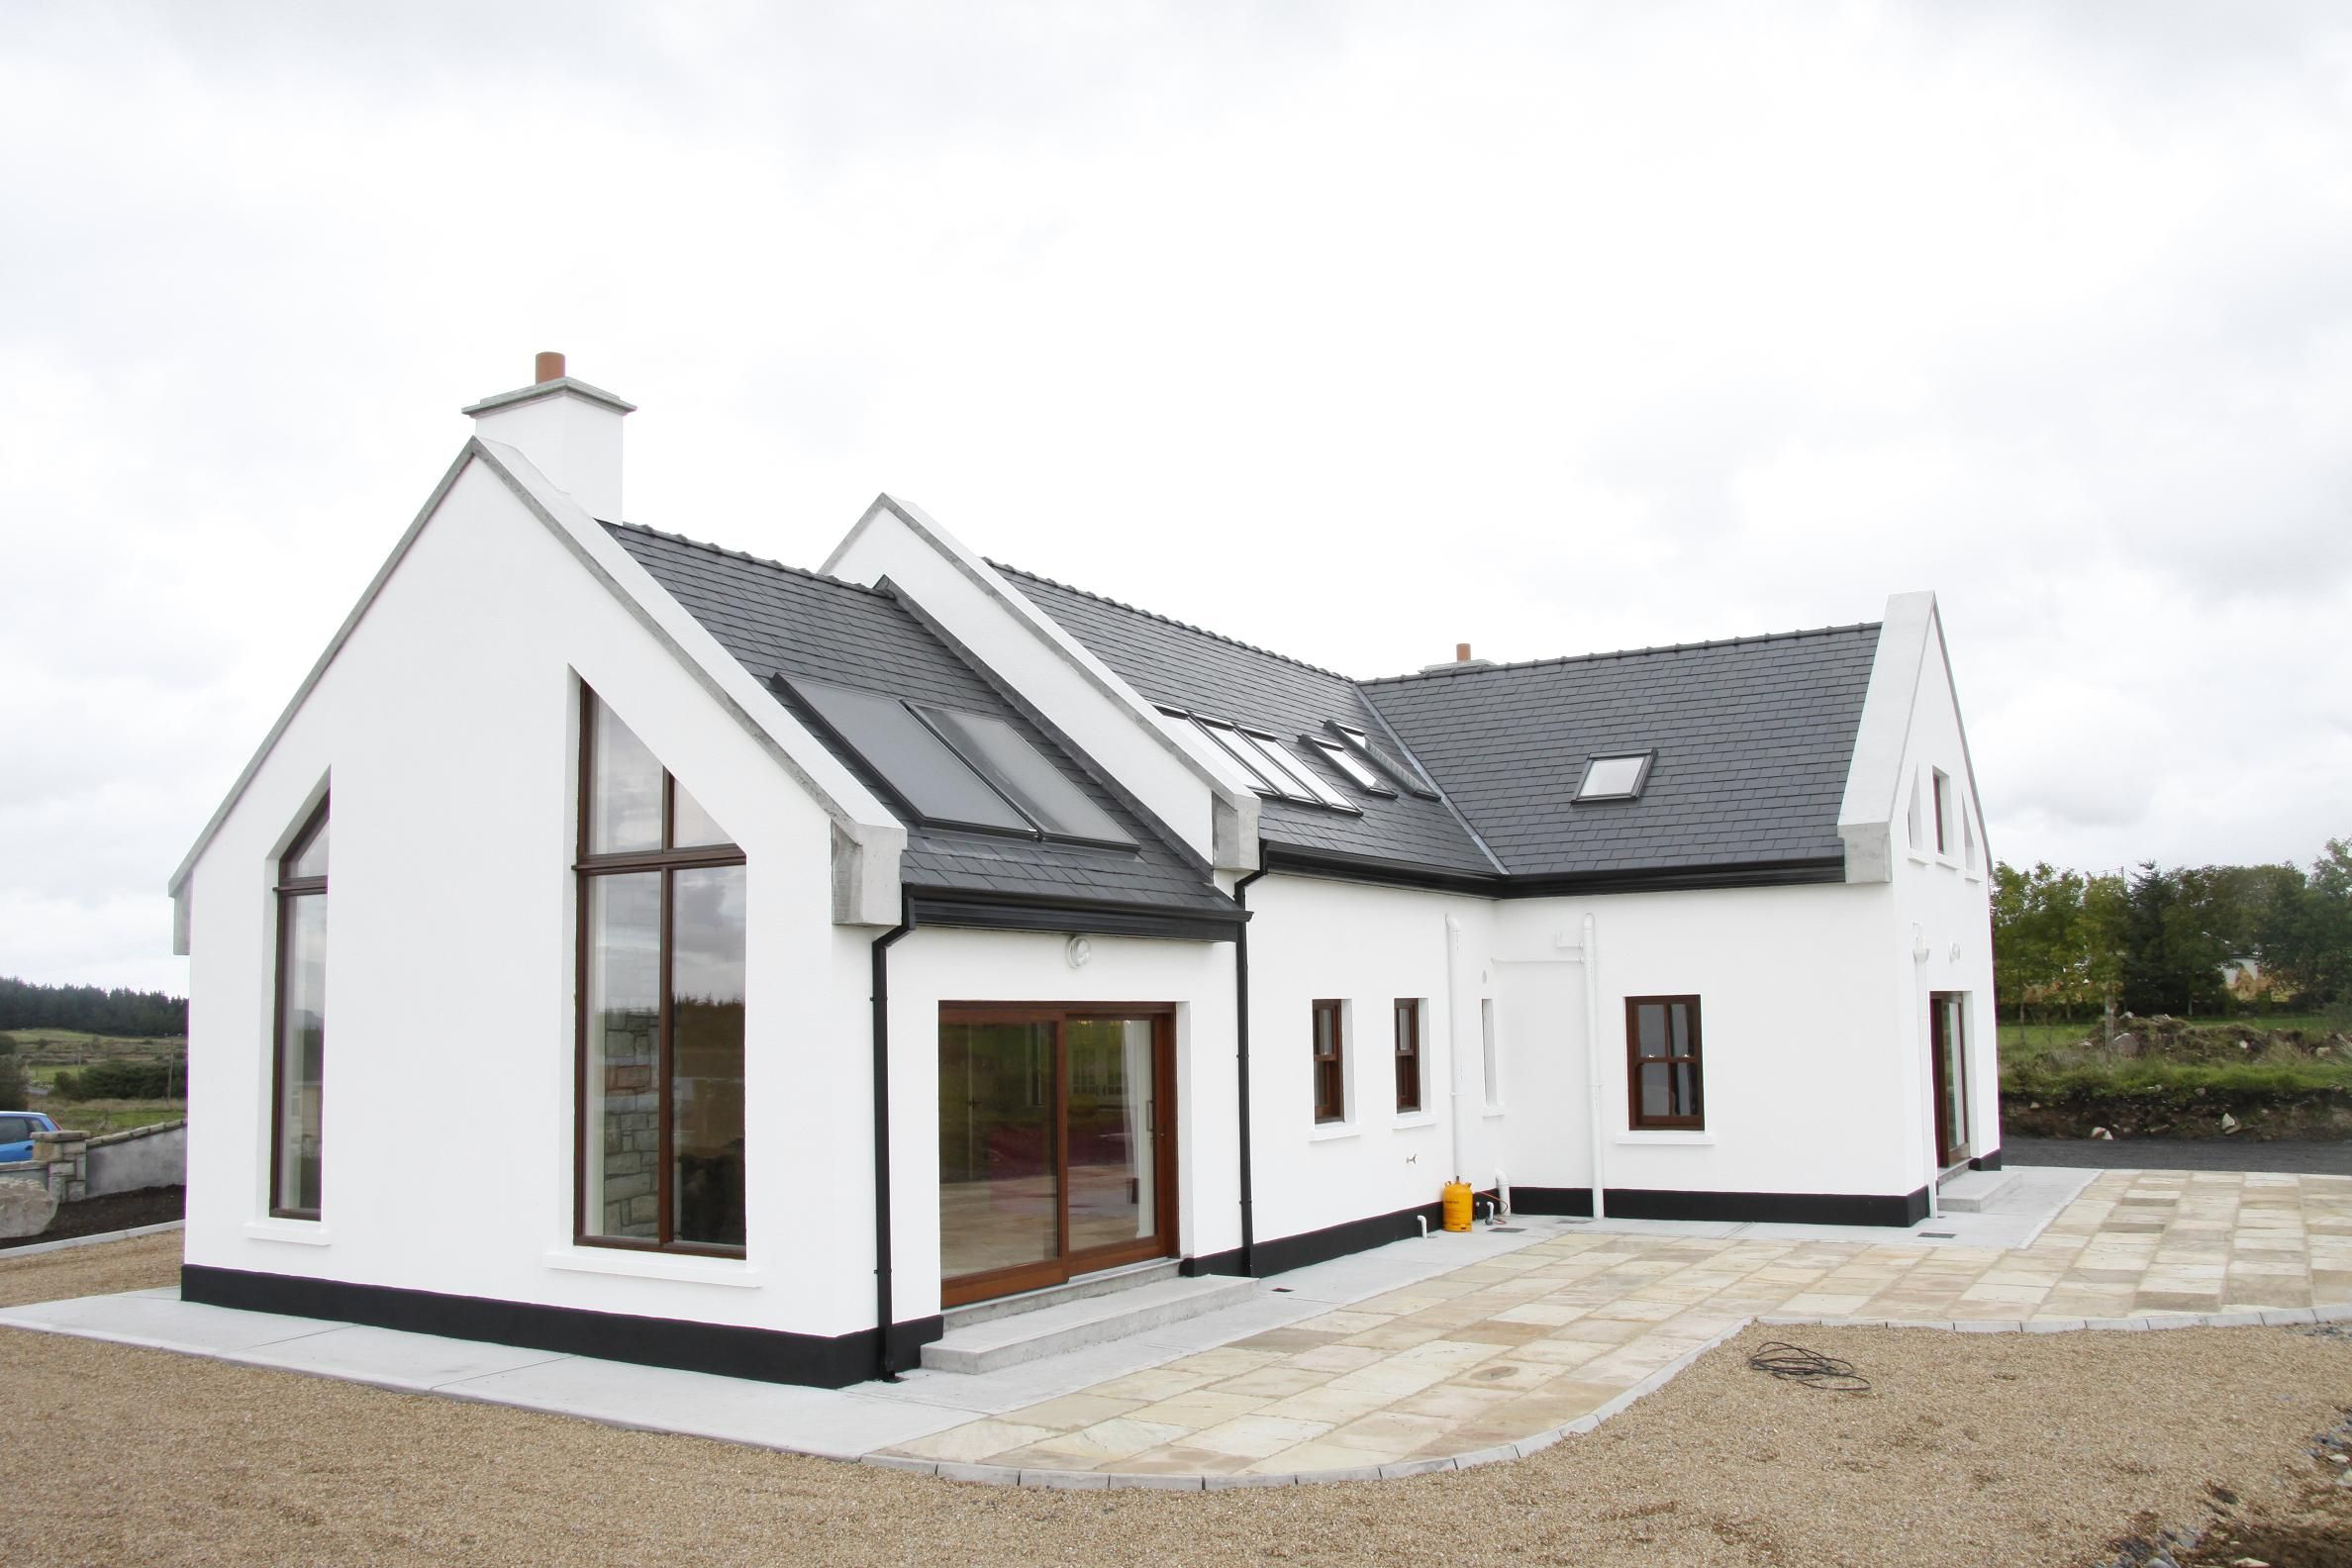 Exterior bungalow house ireland google search